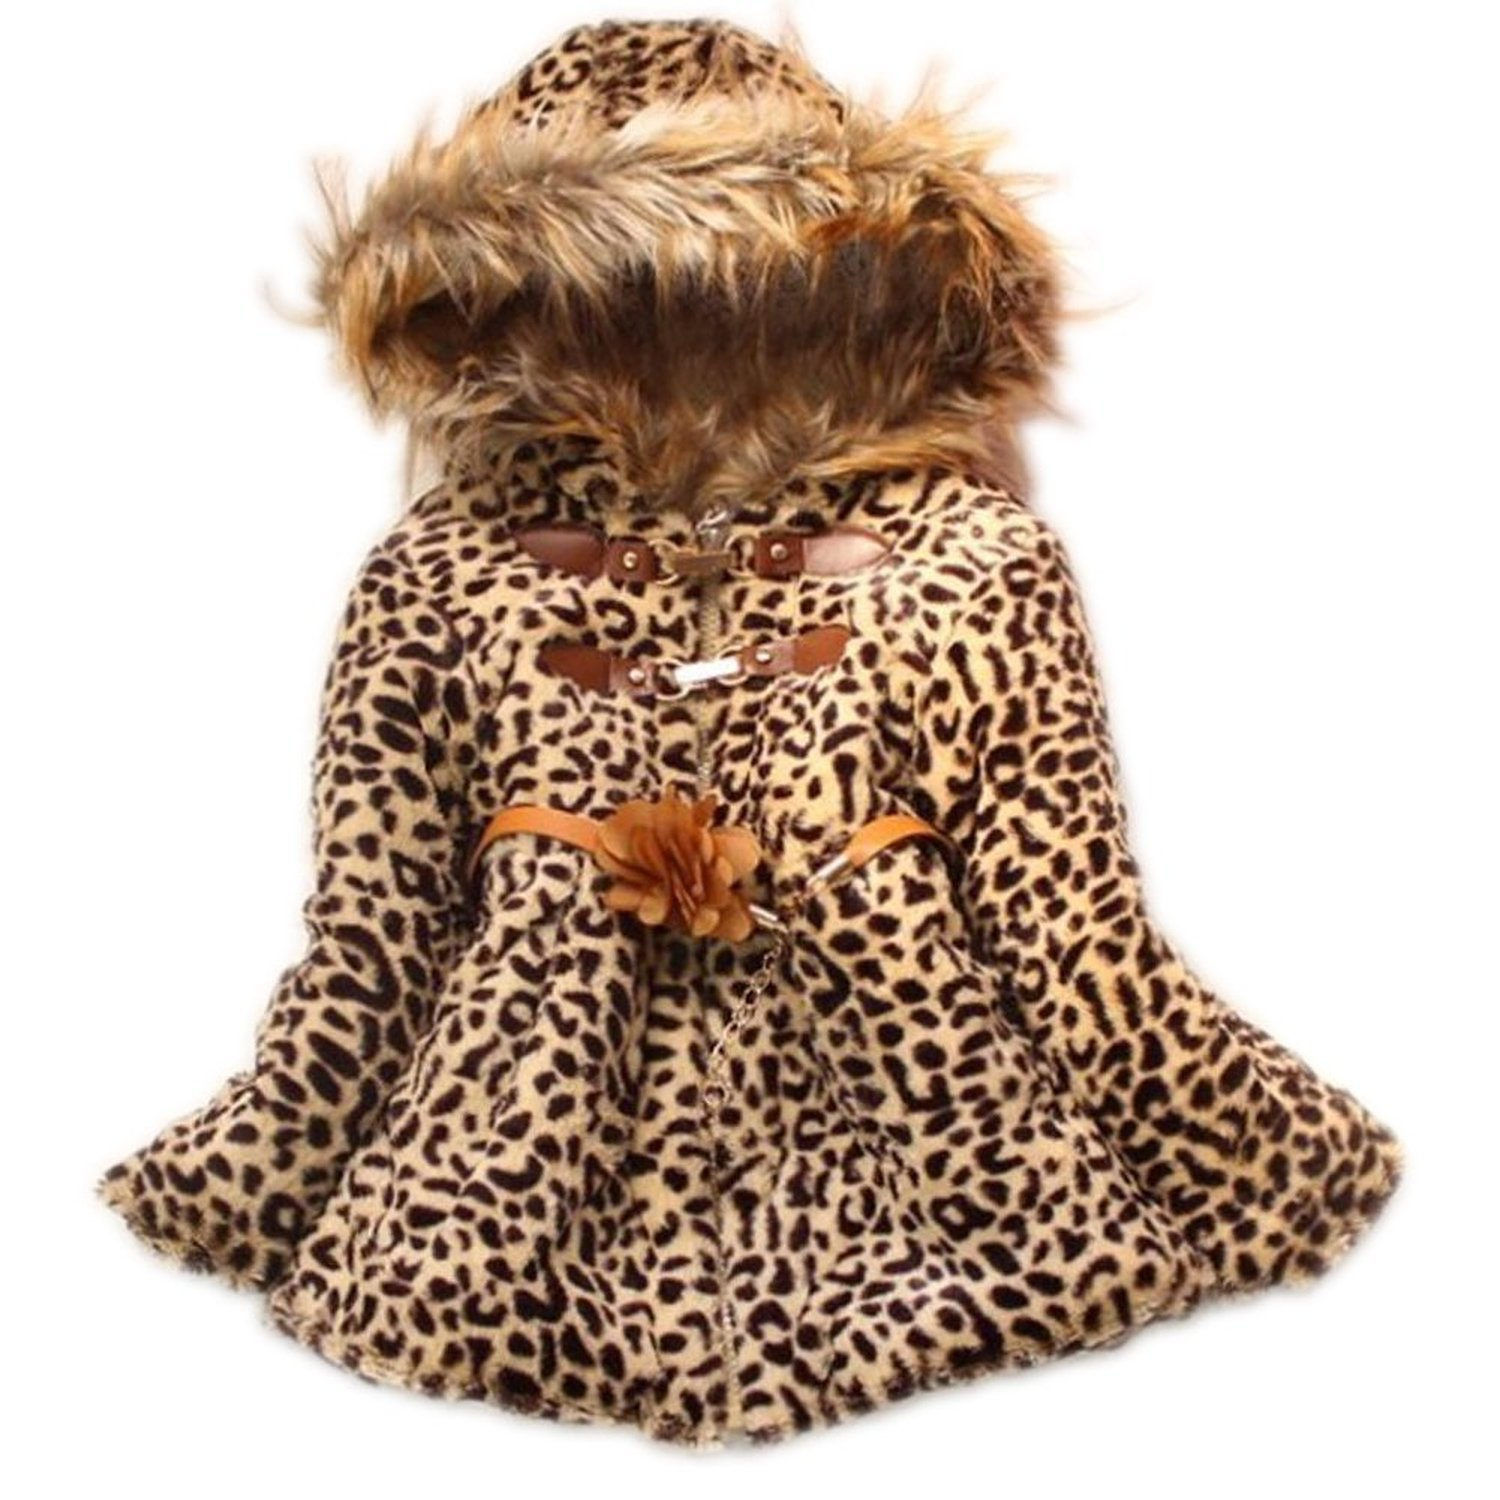 d96fcc6aedf8 EGELEXY Baby Girls Faux Fur Leopard Hoodies Coat Kids Winter Warm ...